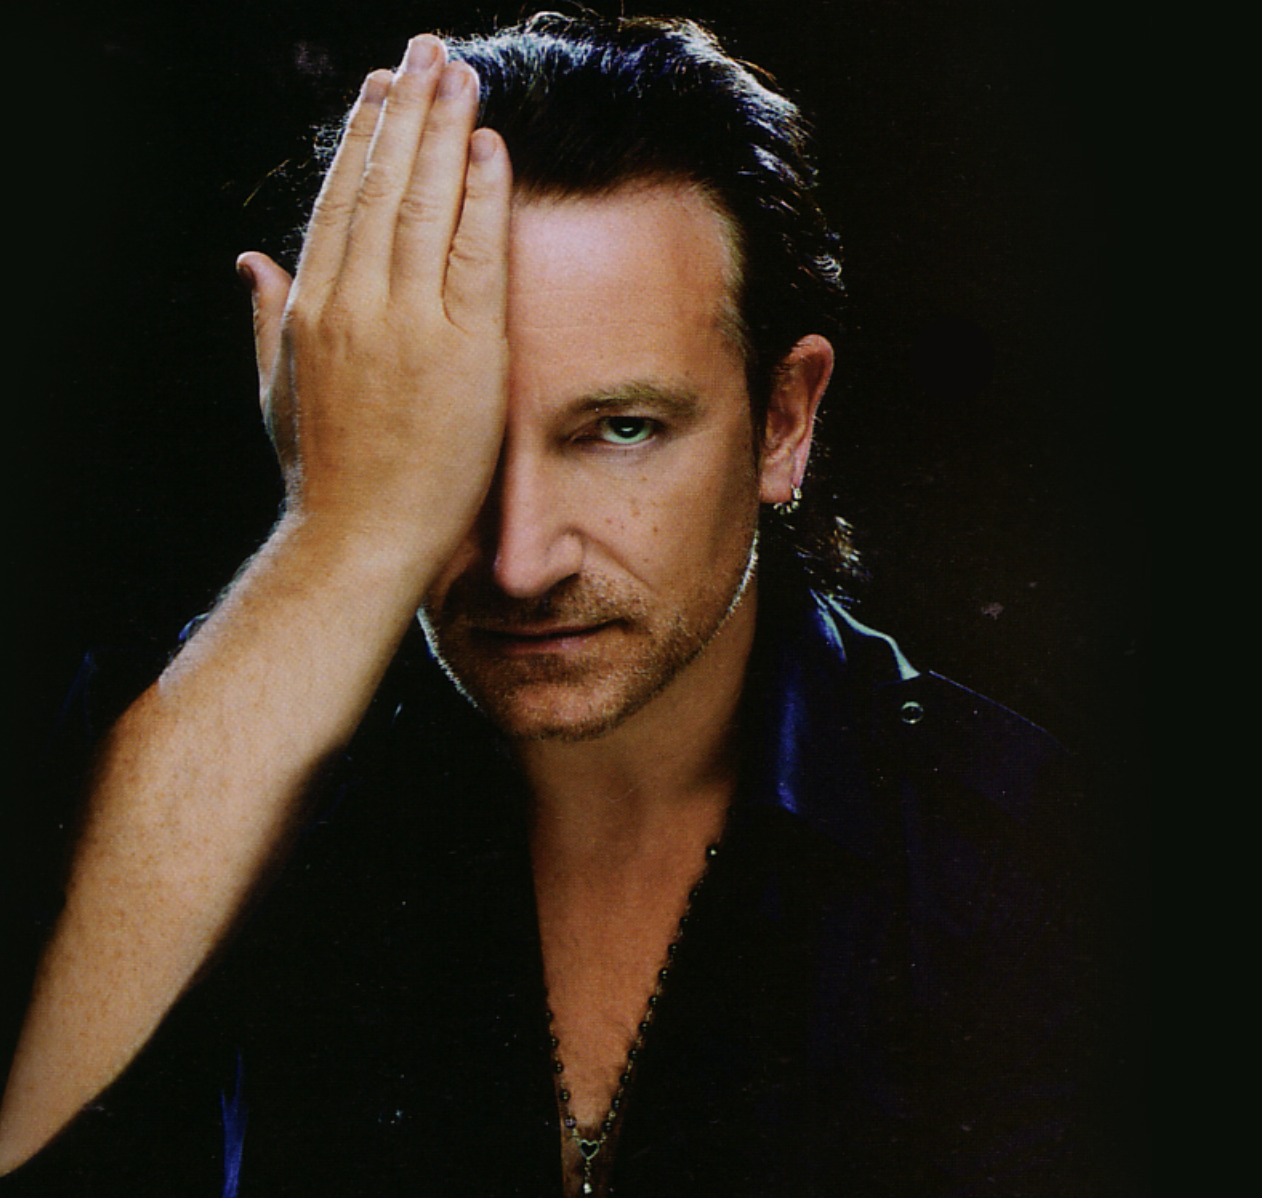 bono covering half of his face with his hand